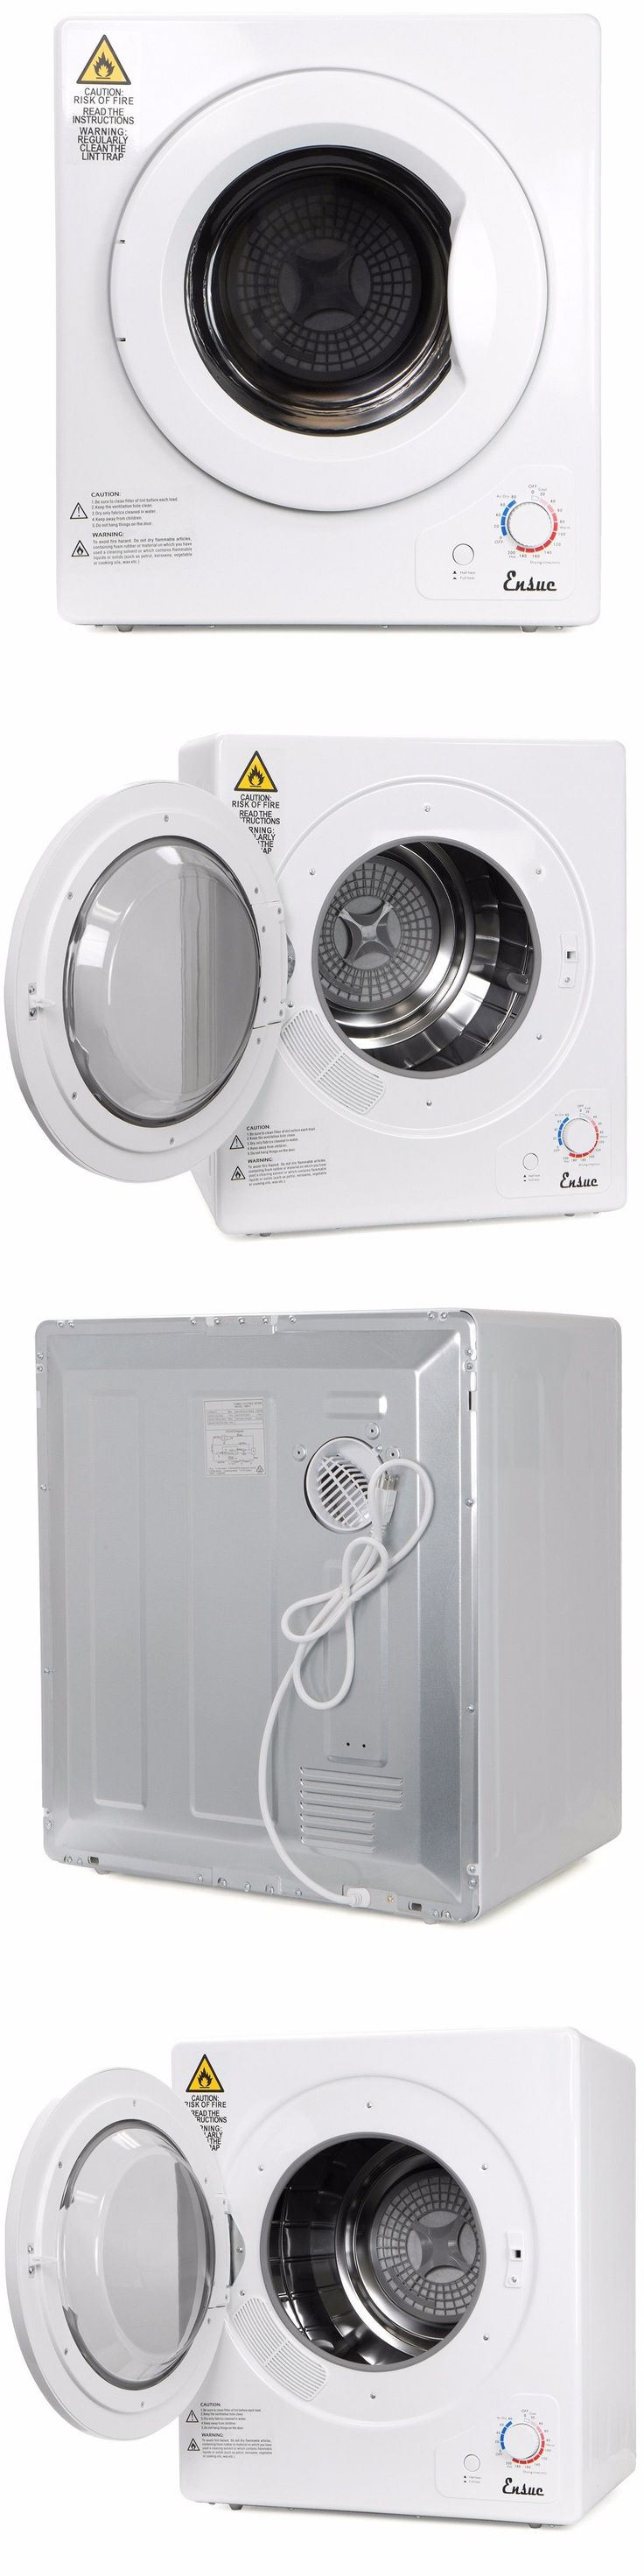 Best 25 tumble dryers ideas only on pinterest mud room designs basement laundry area and - Tumble dryer for small space pict ...